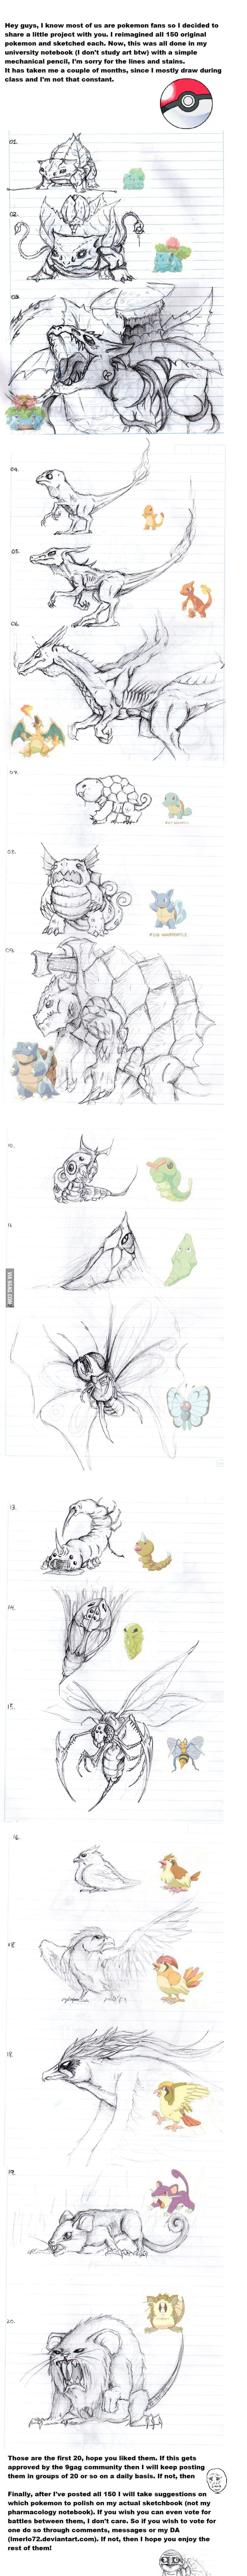 Pokemon Reimagined